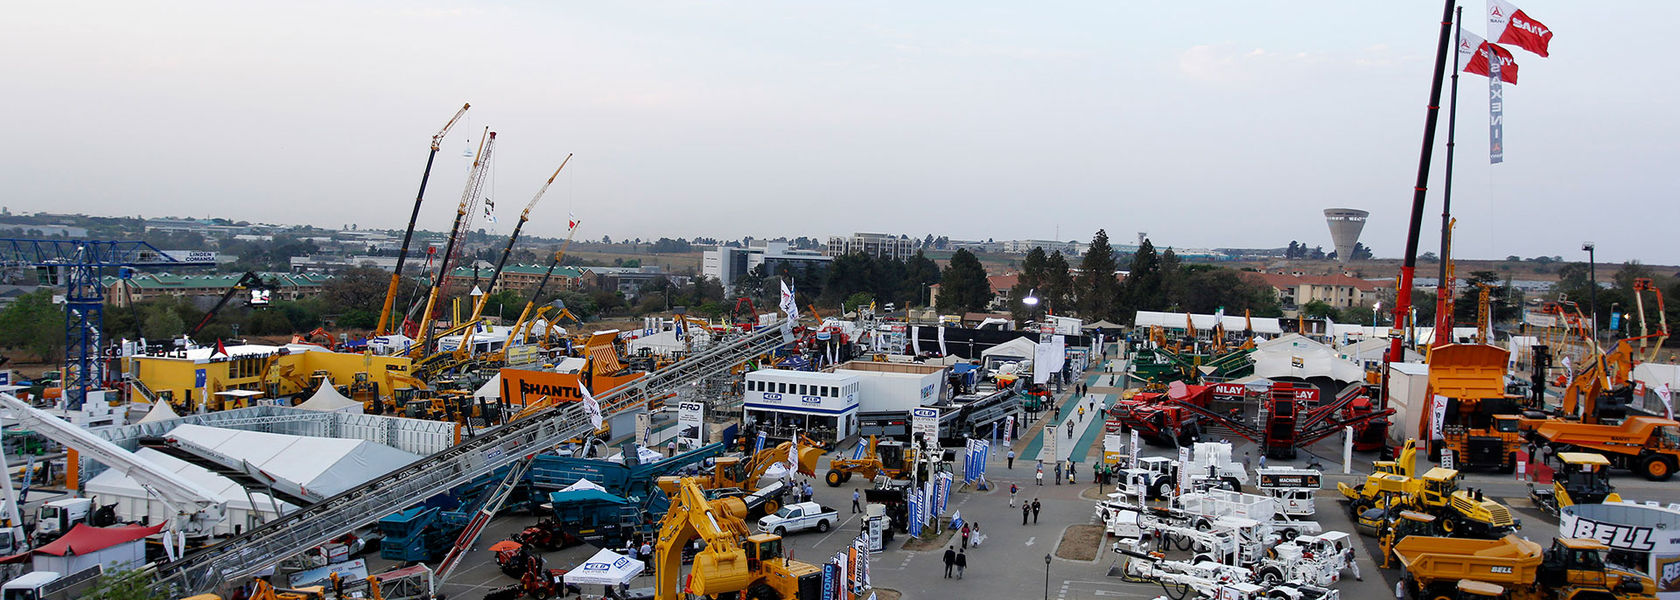 bauma CONEXPO AFRICA 2021: concept re-engineered